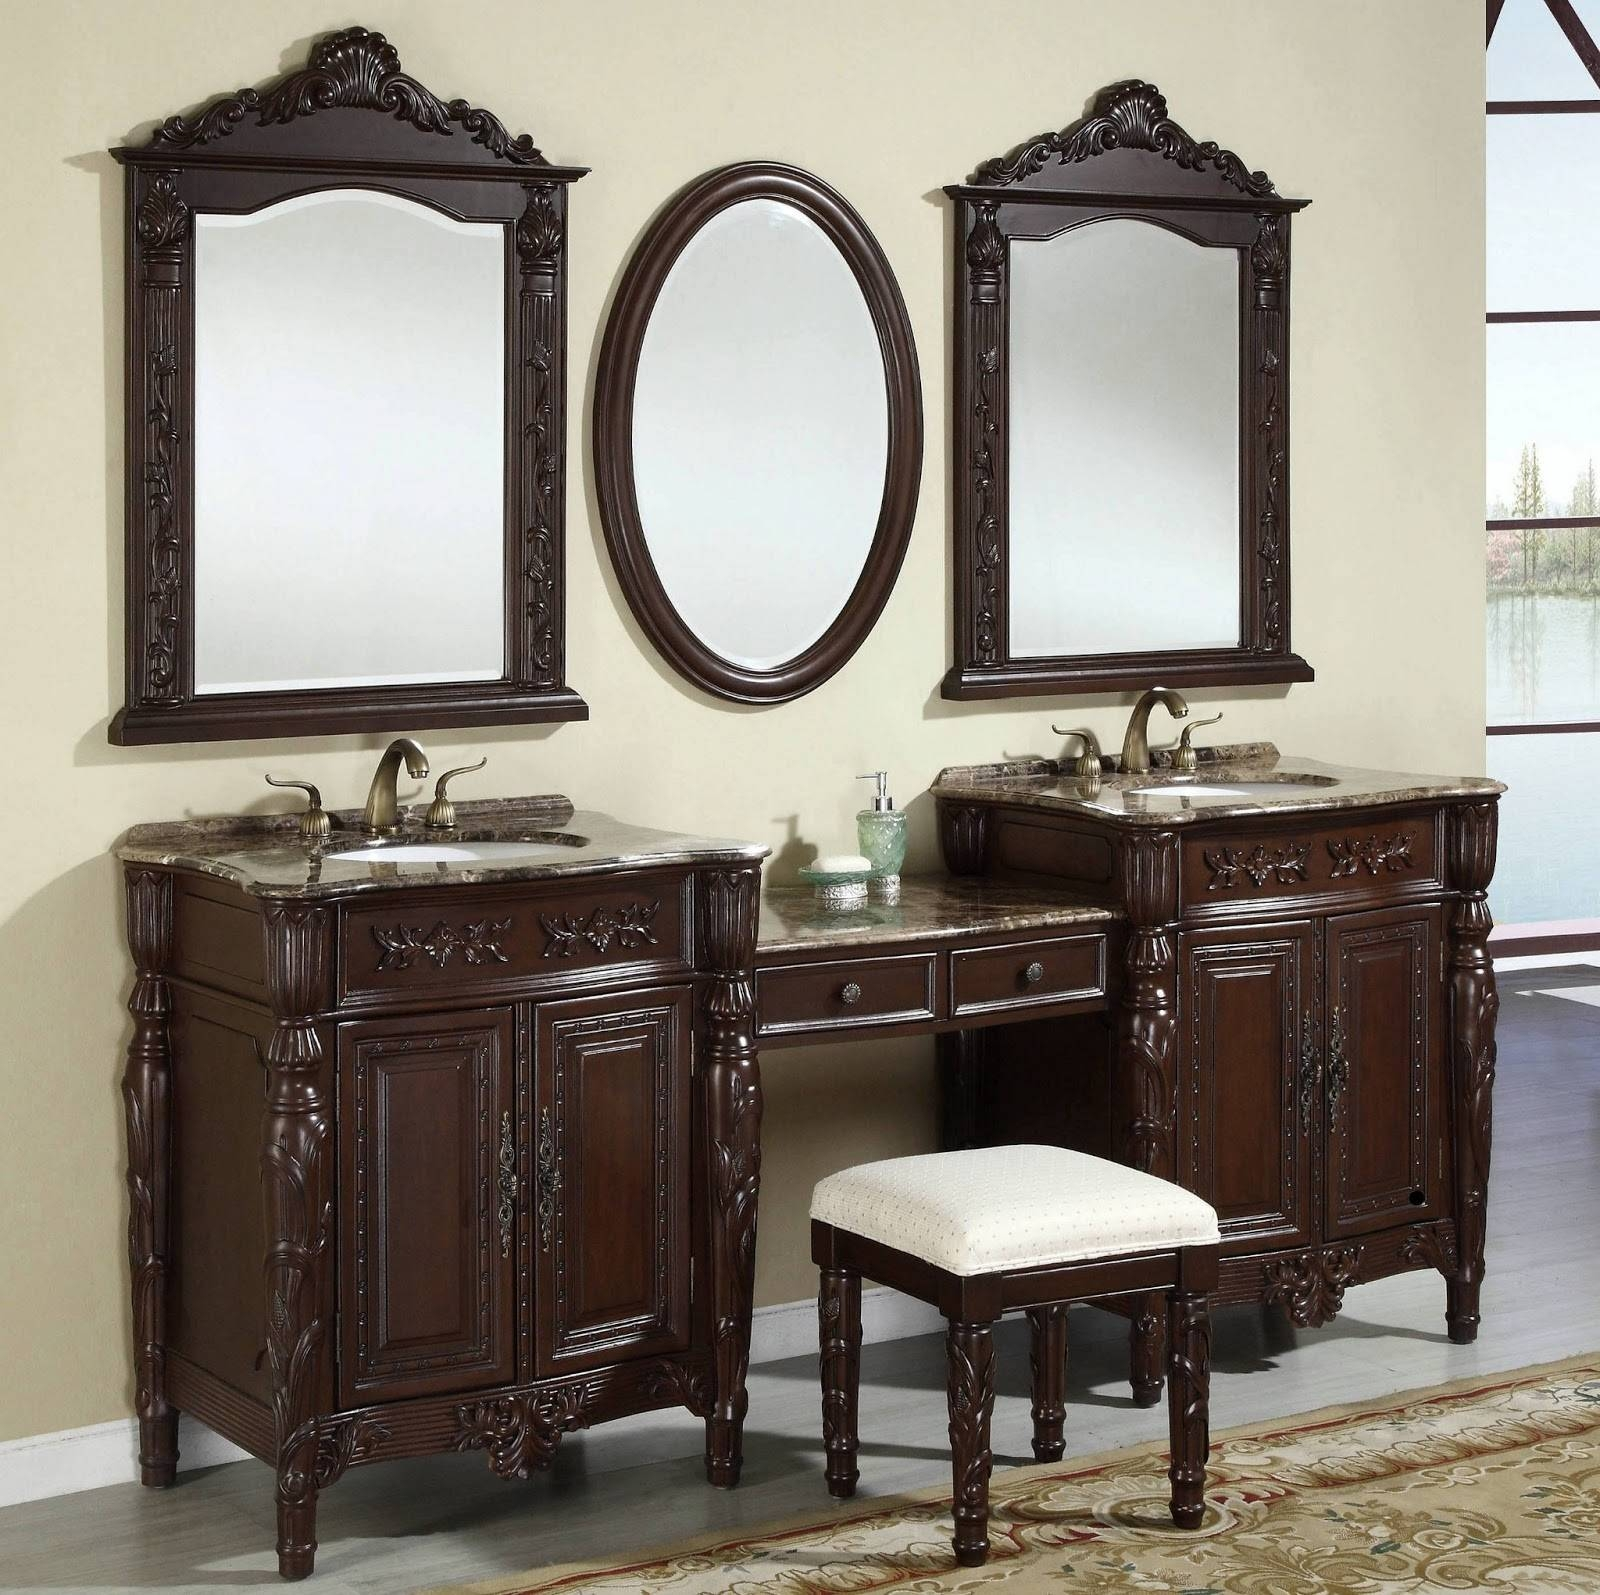 Bathroom Vanity Mirrors Design Ideas – Somats With Regard To Antique Mirrors For Bathrooms (View 11 of 15)